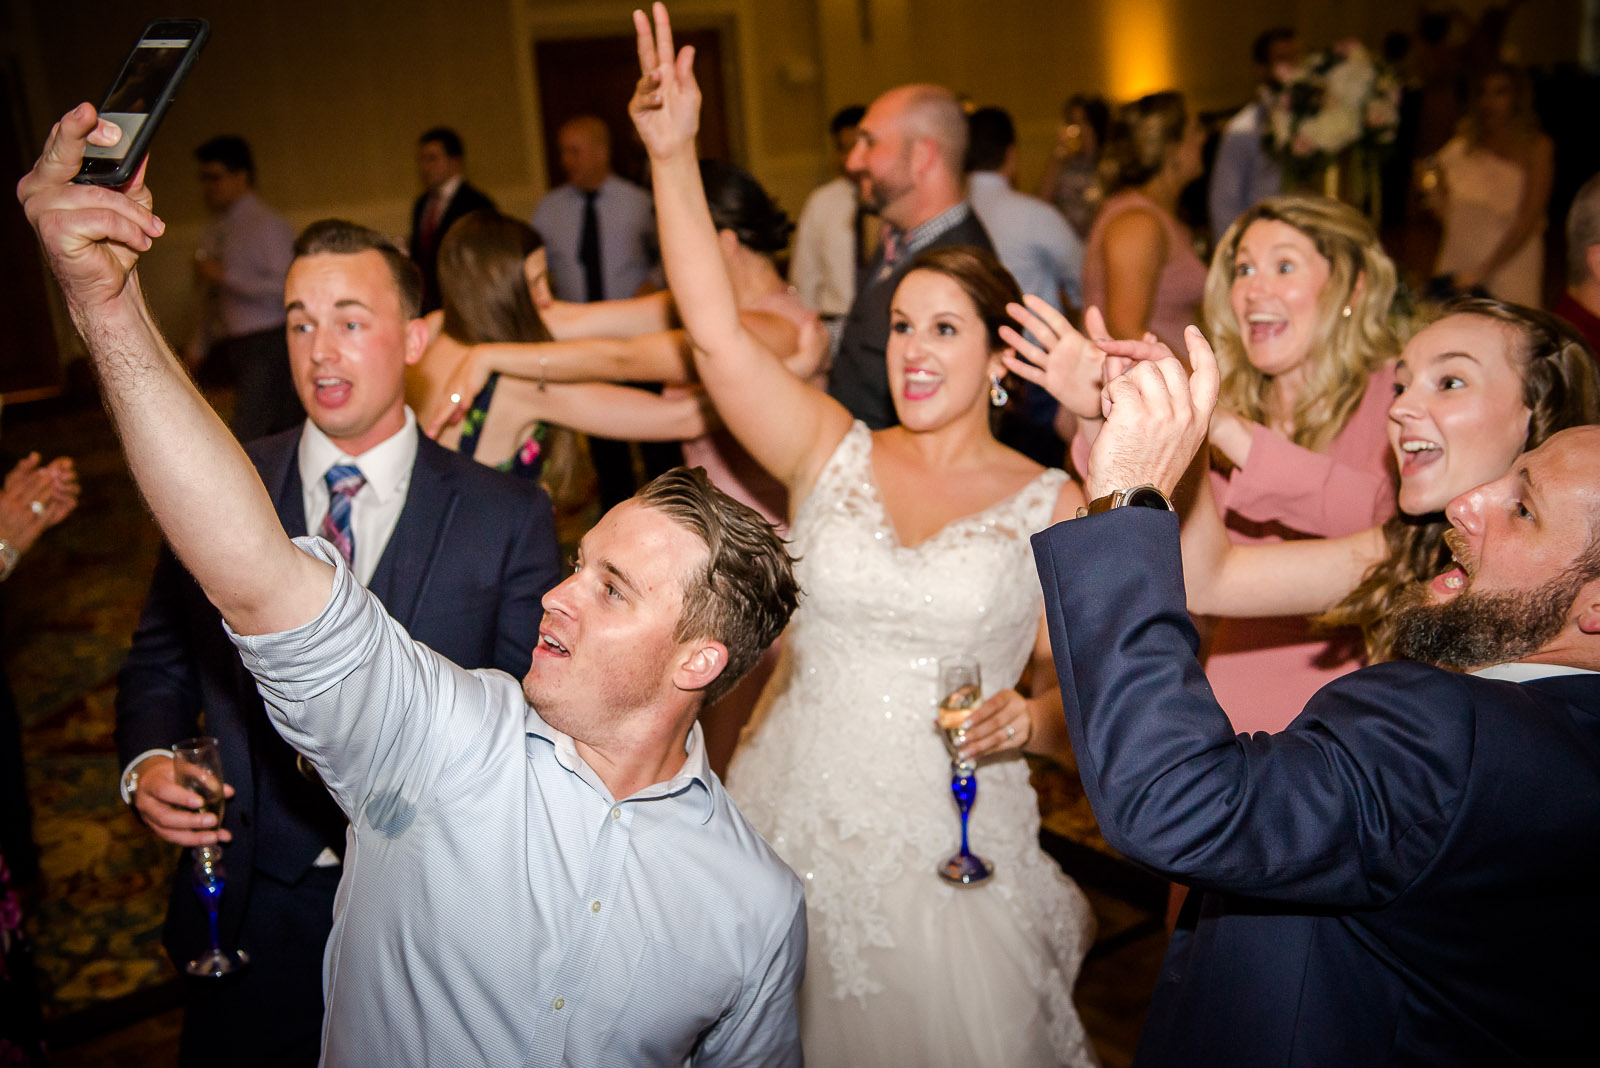 Eric_and_Christy_Photography_Blog_2018_Wed_moments-50